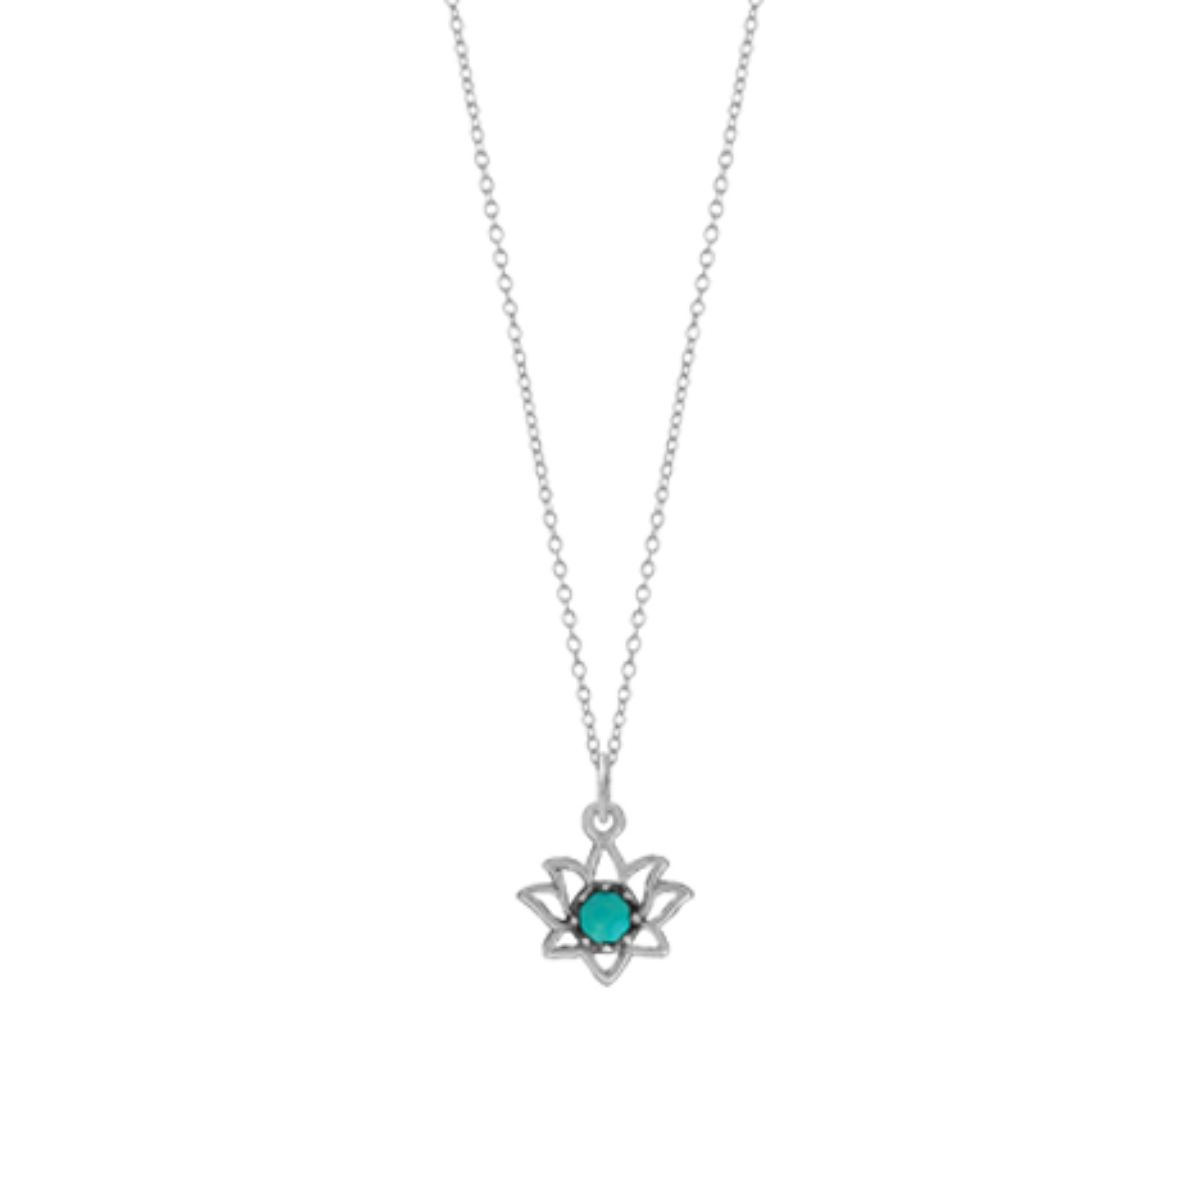 BO N4288 TURQUOISE LOTUS NECKLACE